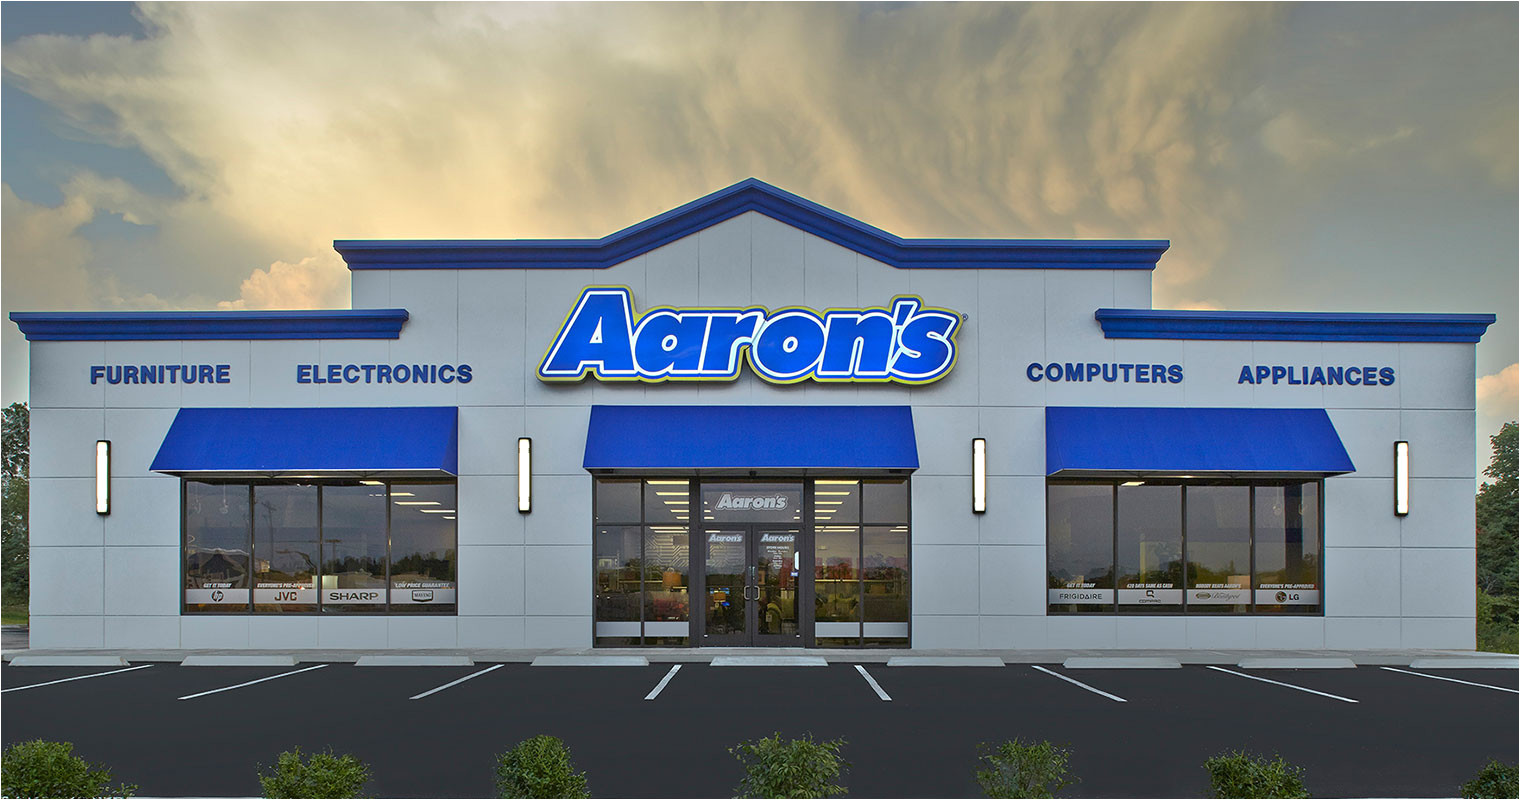 aaron s stores footer image